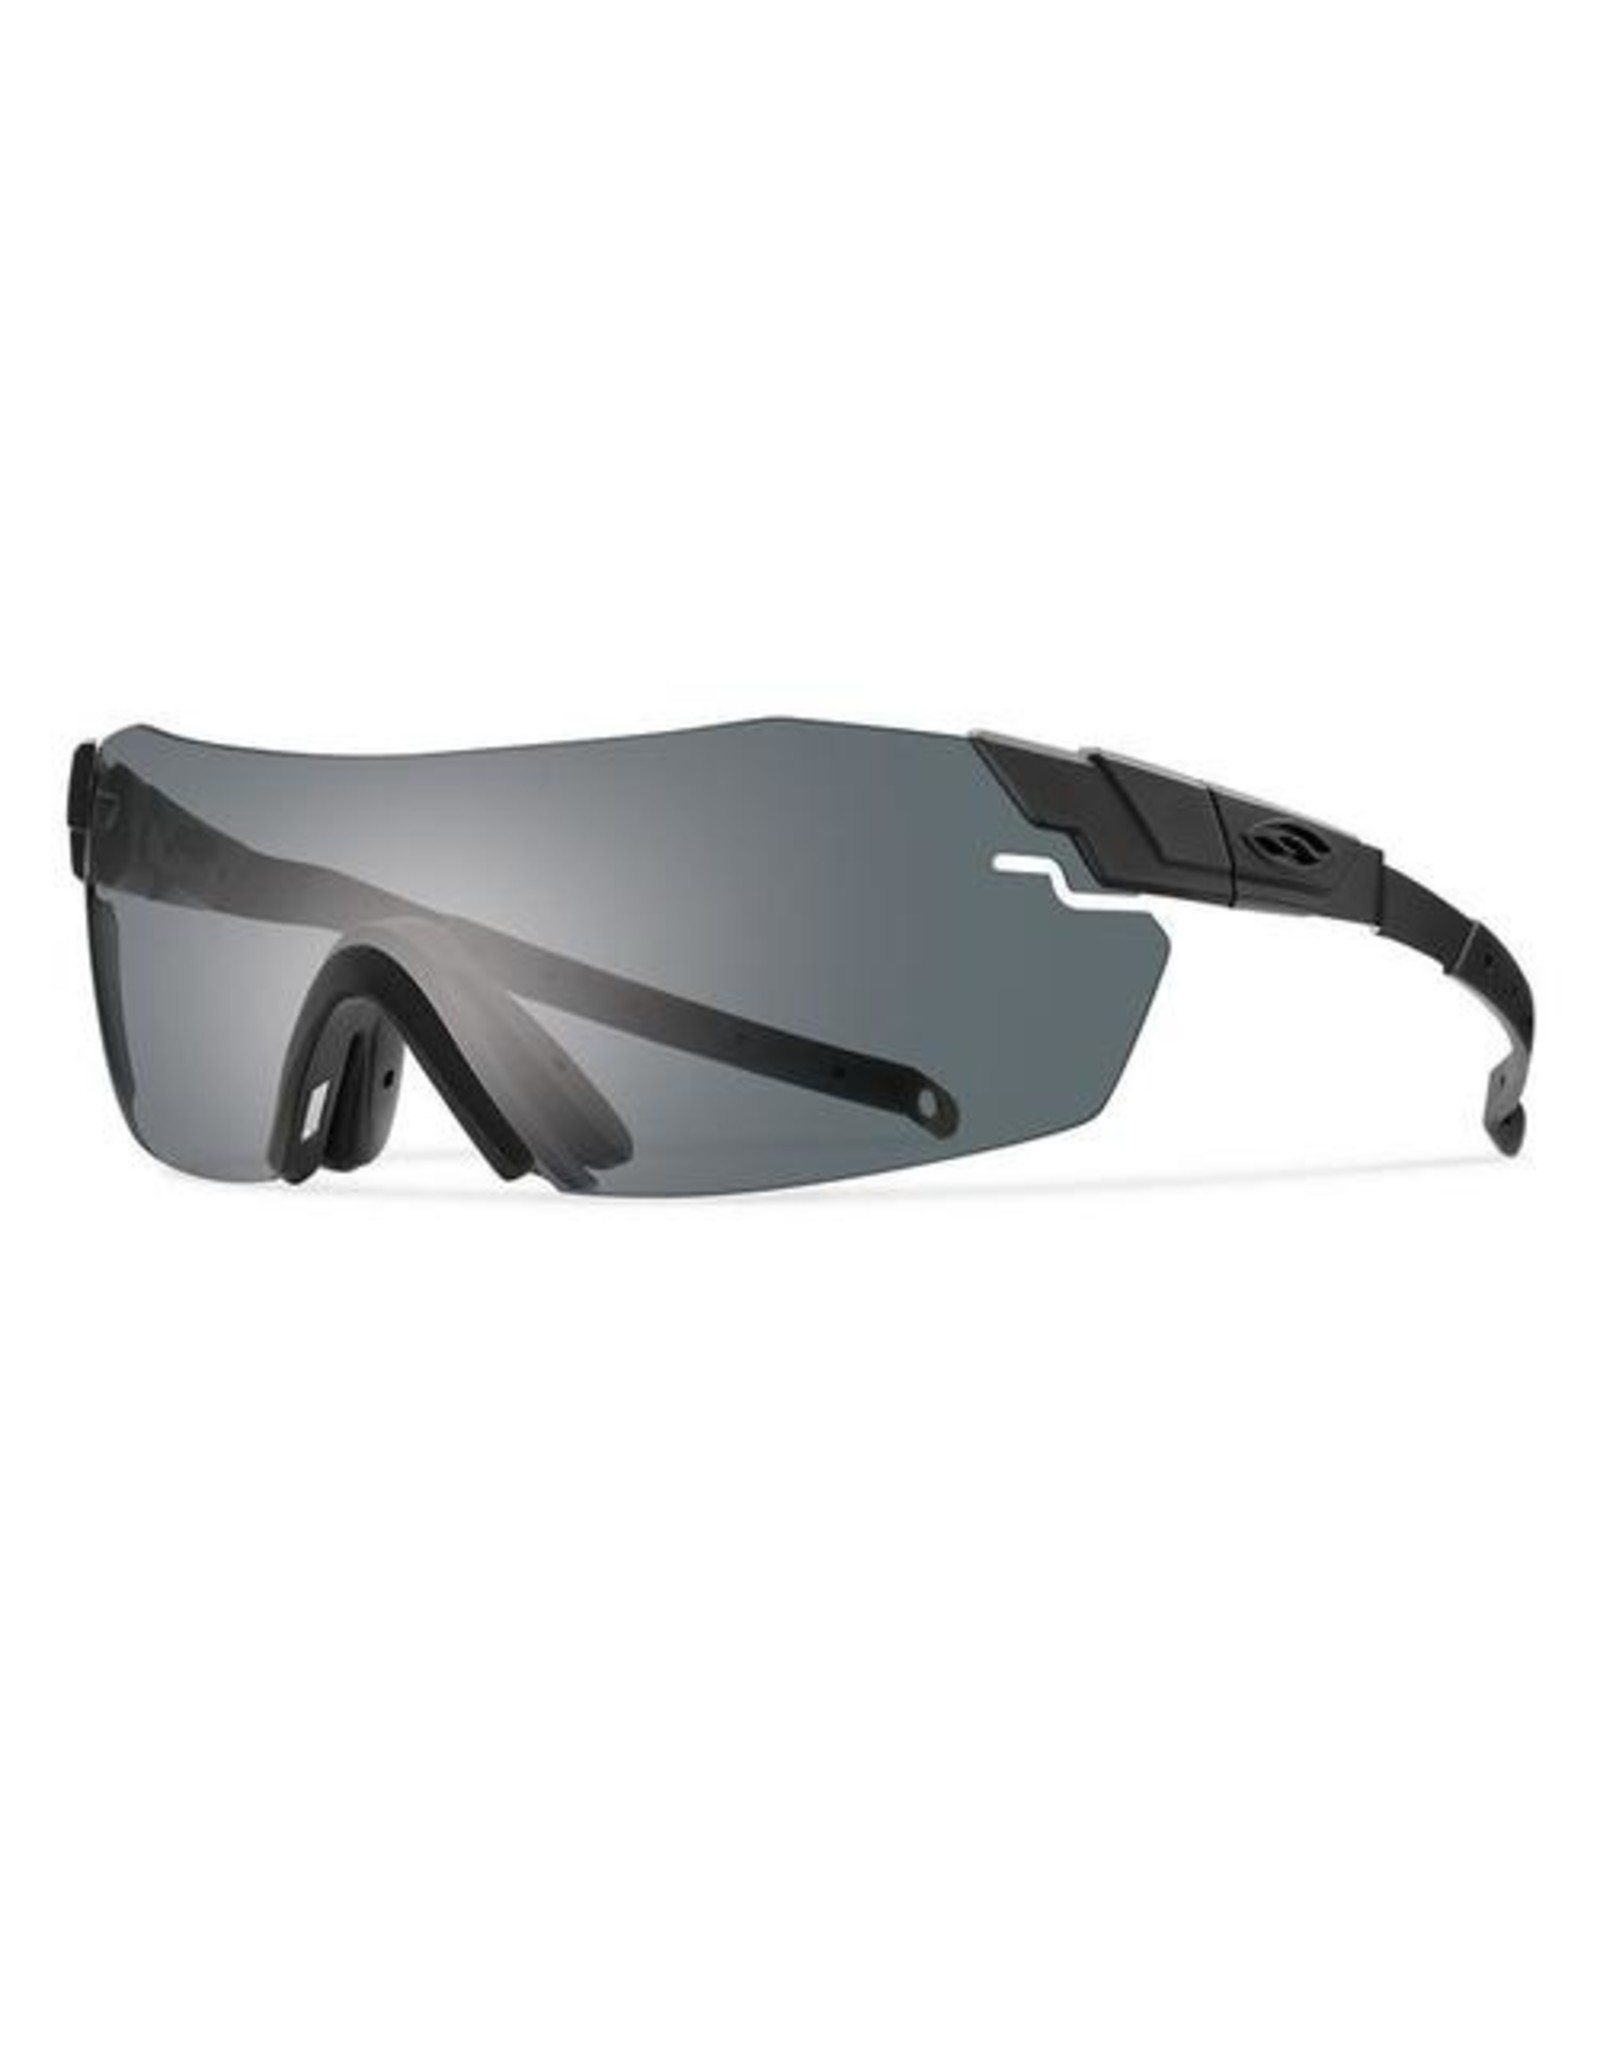 SMITH OPTICS ELITE PIVLOCK ECHO